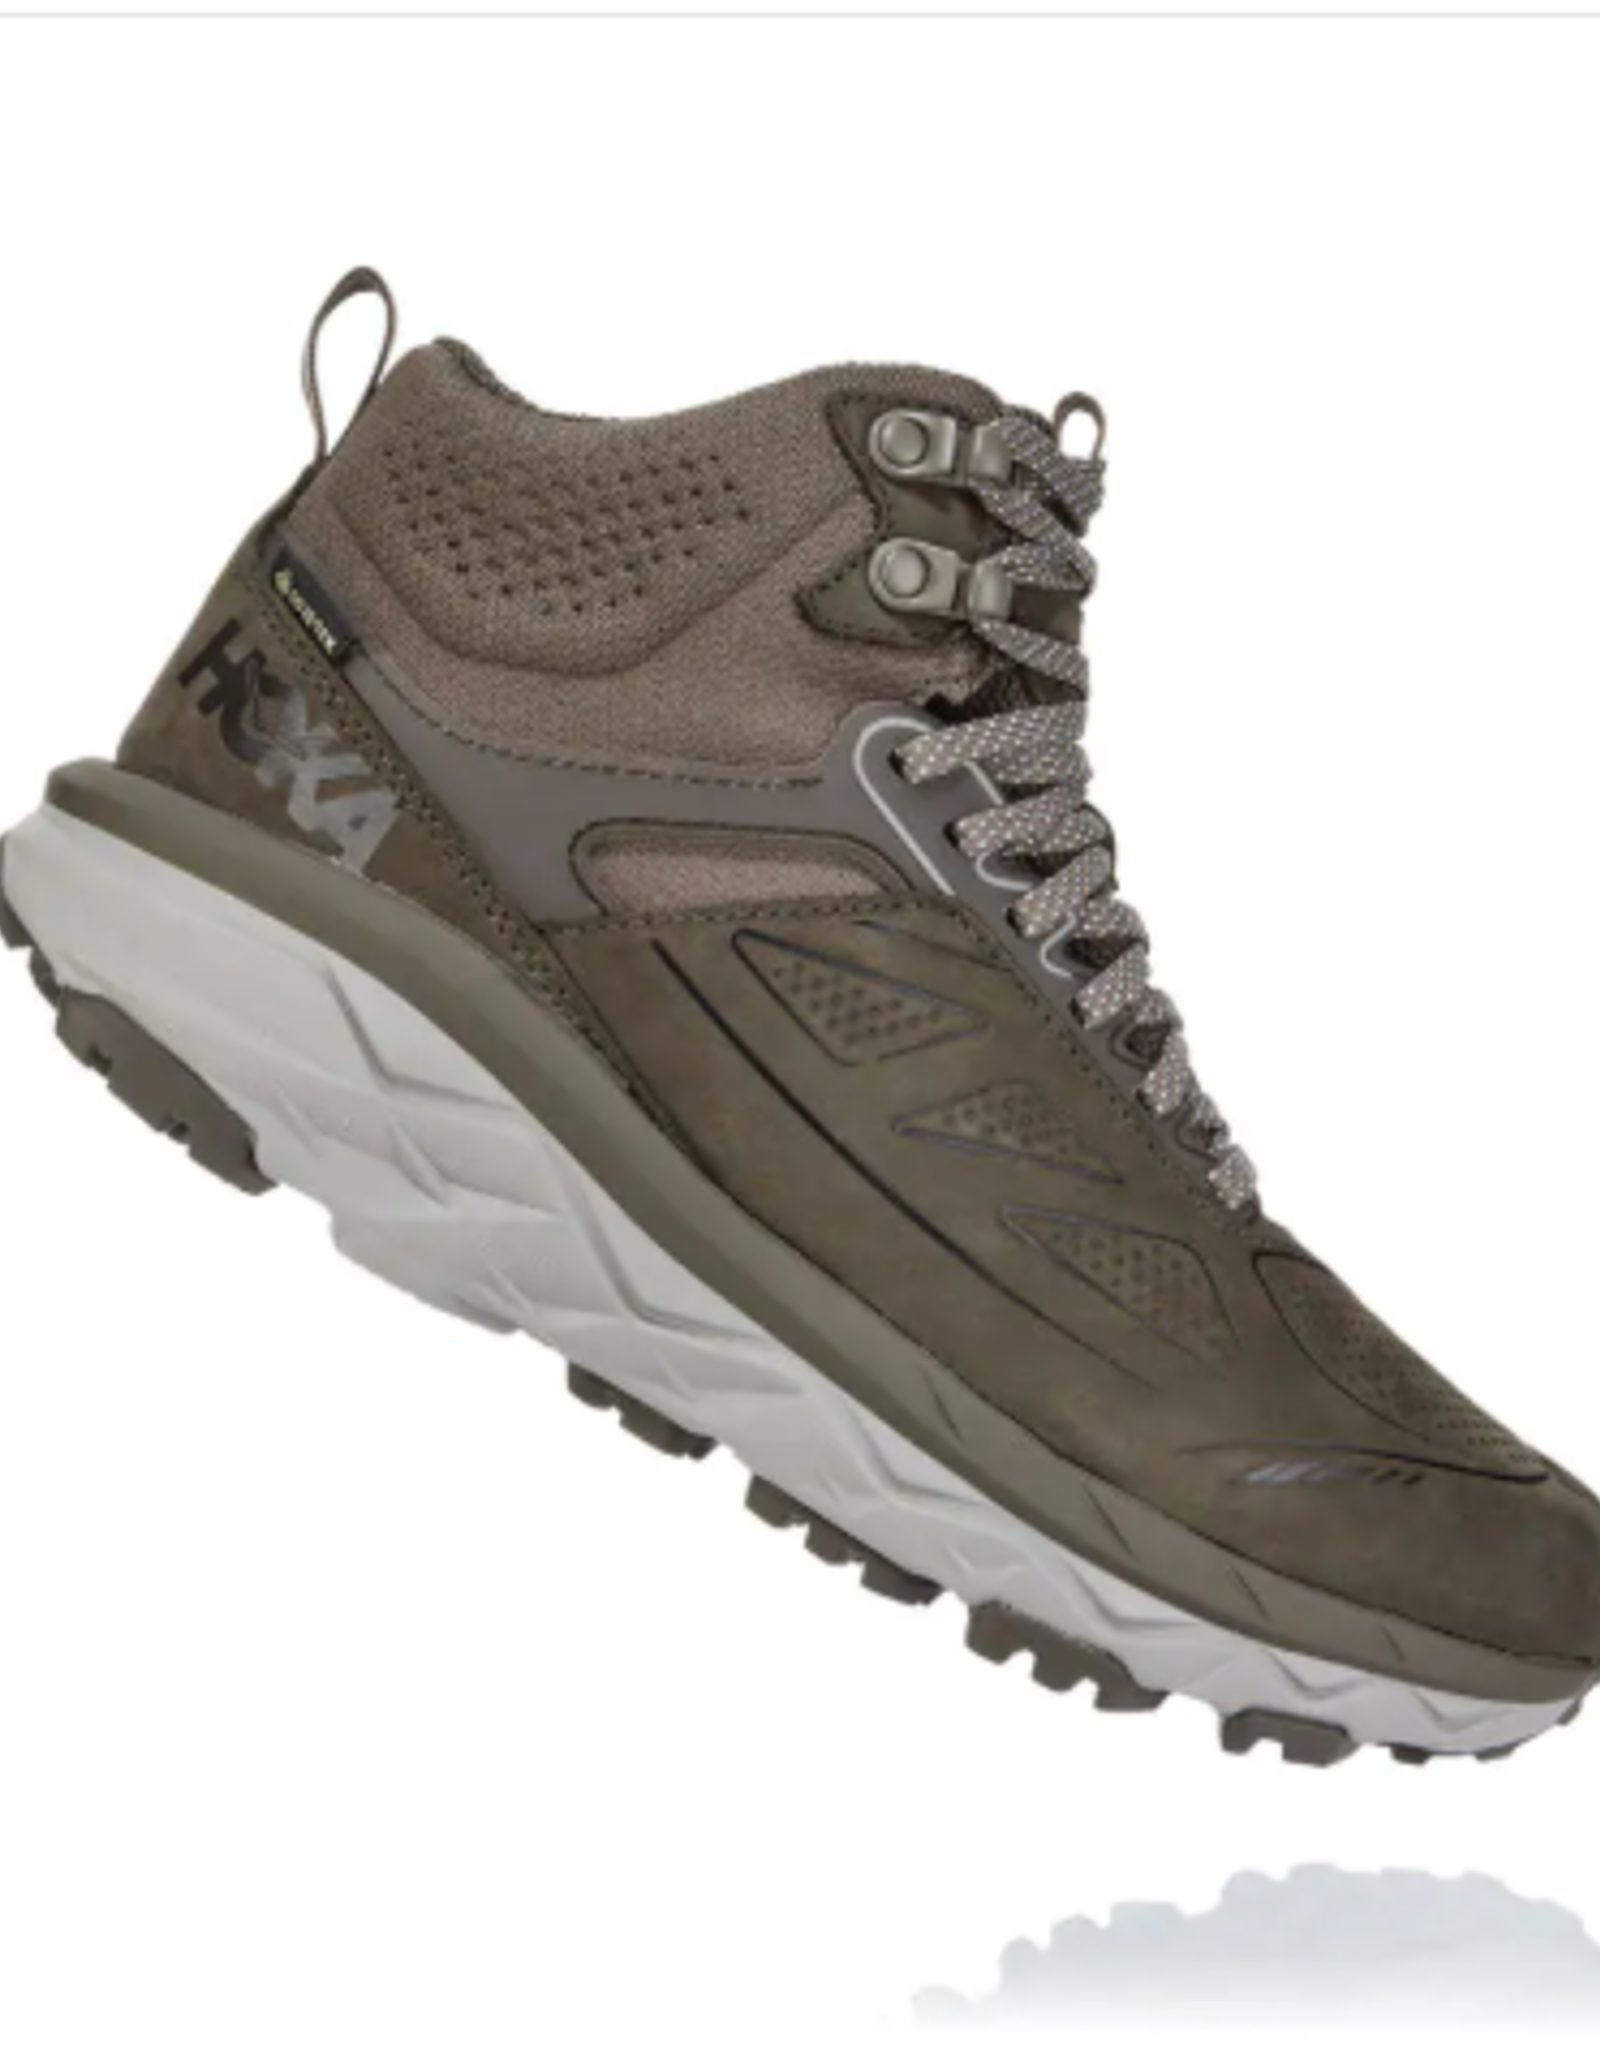 Hoka One One Challenger Mid Gore-tex dames (ref 1106522)